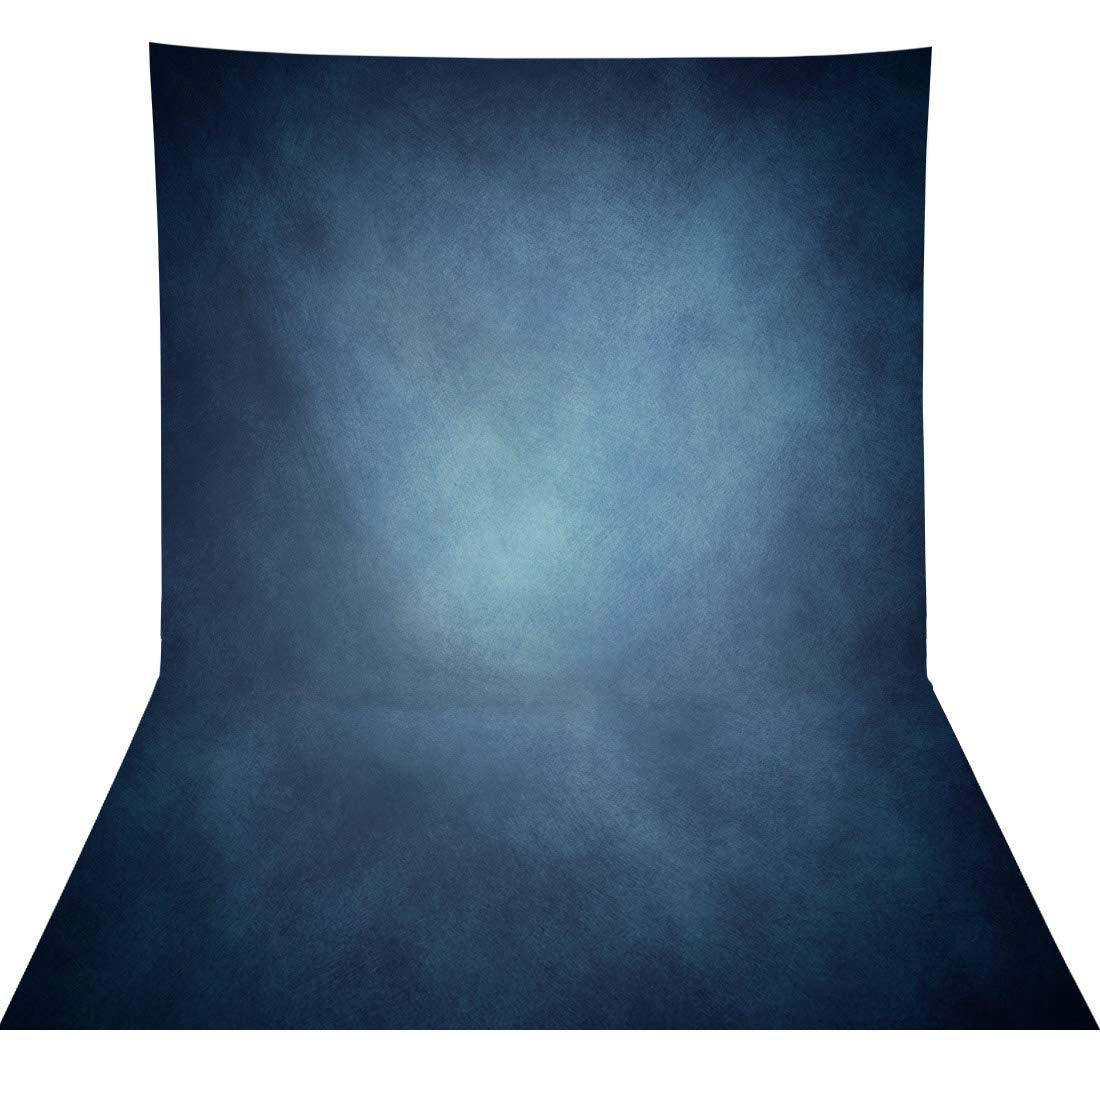 Allenjoy 5x7ft Fabric Abstract Dark Blue Photography Backdrop Supplies Vintage Grunge Texture Old Master Background Photographer Professional Portrait Pictures Photoshoot Props Favors Studio Booth